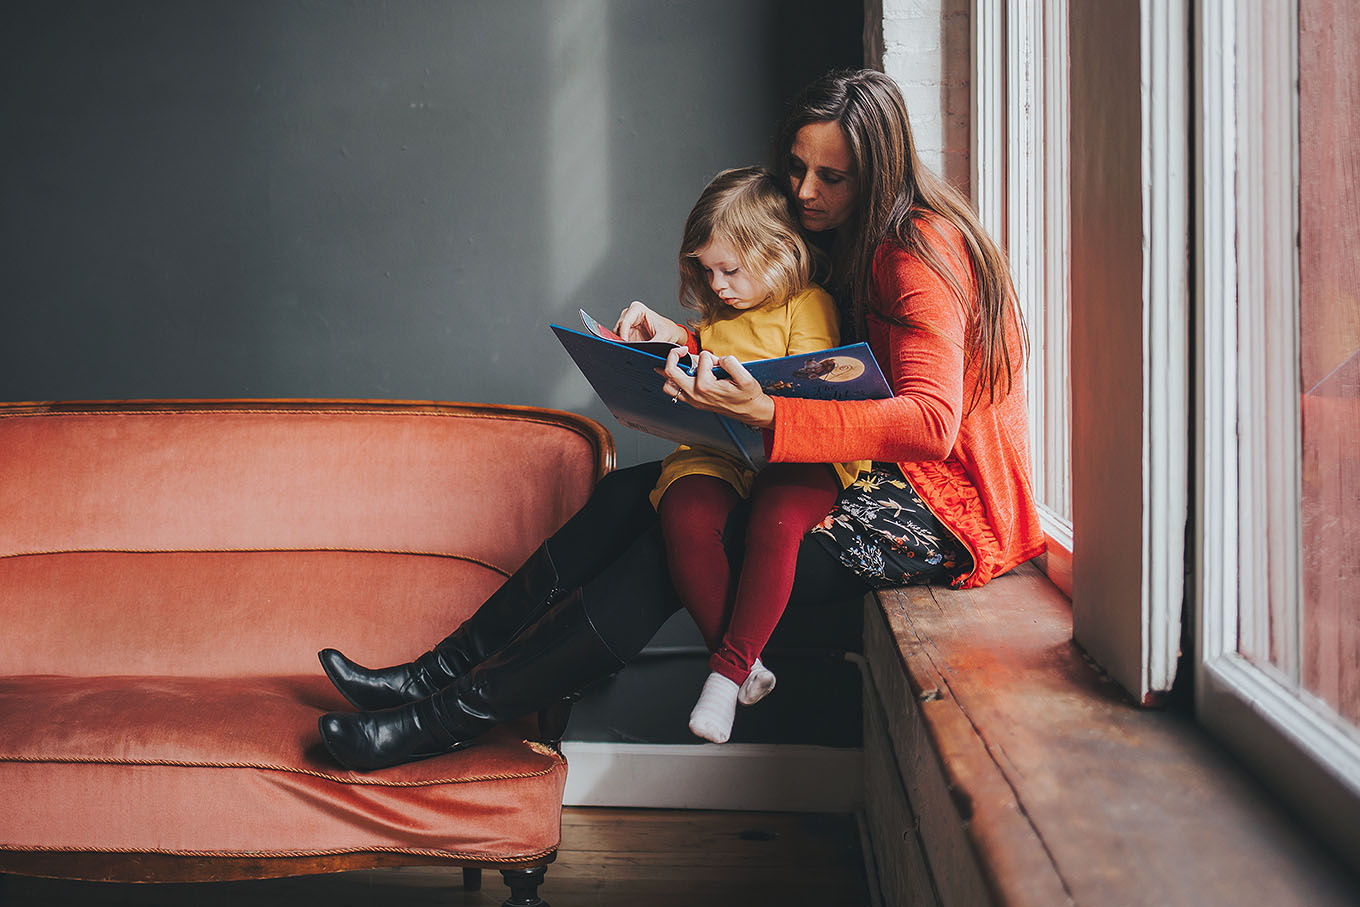 We put a lot of pressure on ourselves as moms to make the holidays special. It's so easy to adopt the myth that doing more will equal more magic.